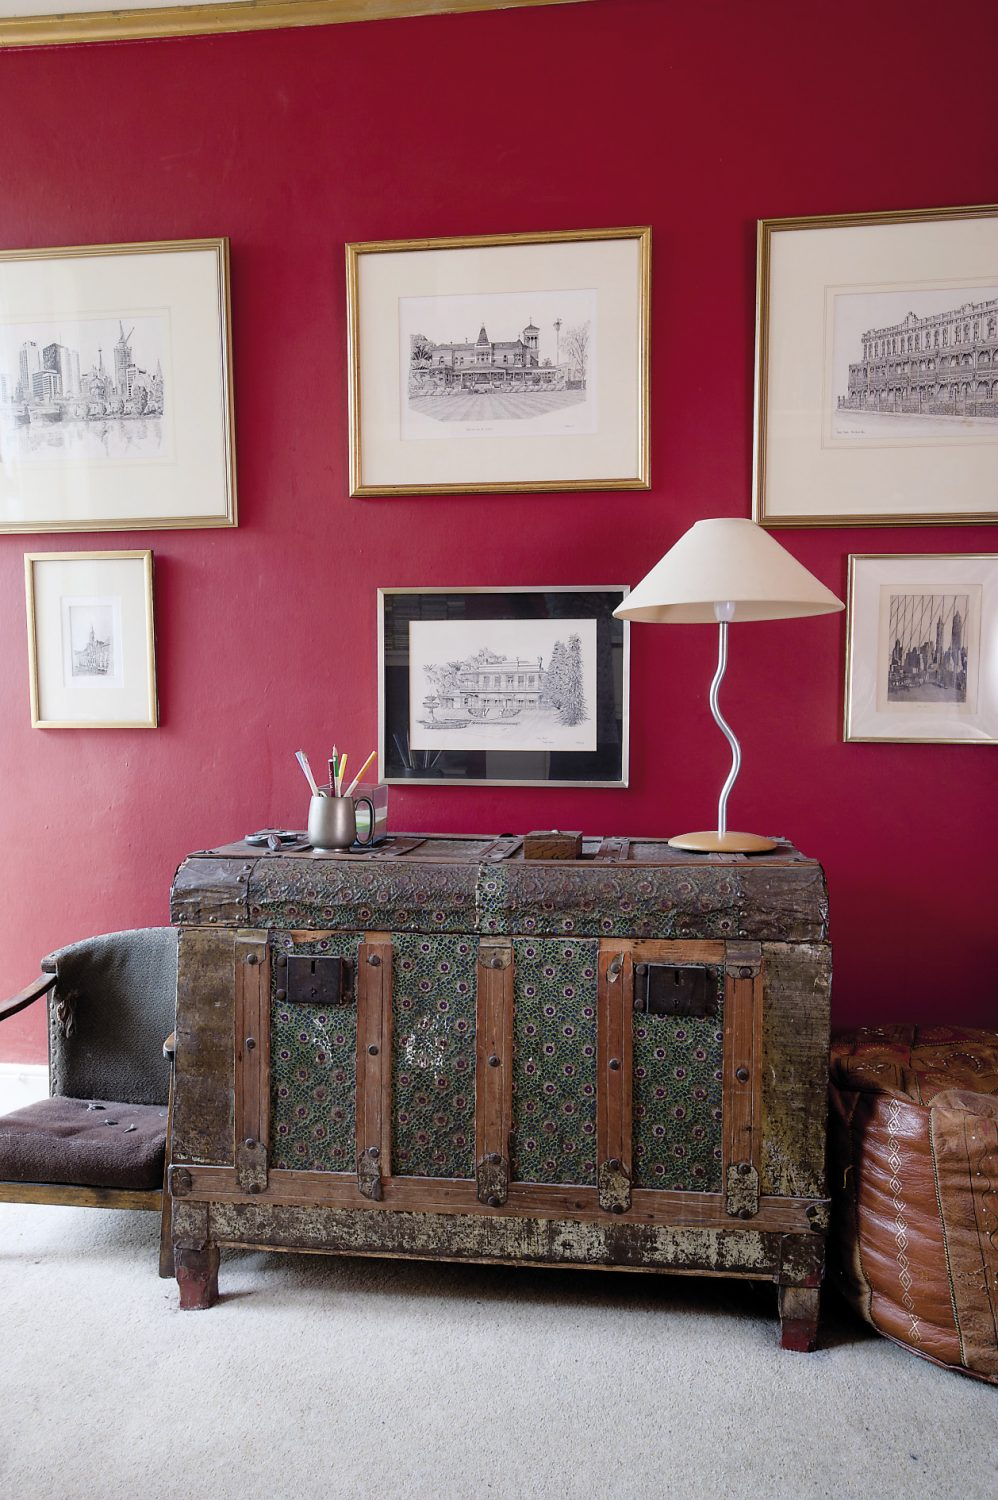 Alastair's love of travel is evident throughout the sitting room, from the oriental rug on the floor to the kilim-style printed fabric that covers the armchair